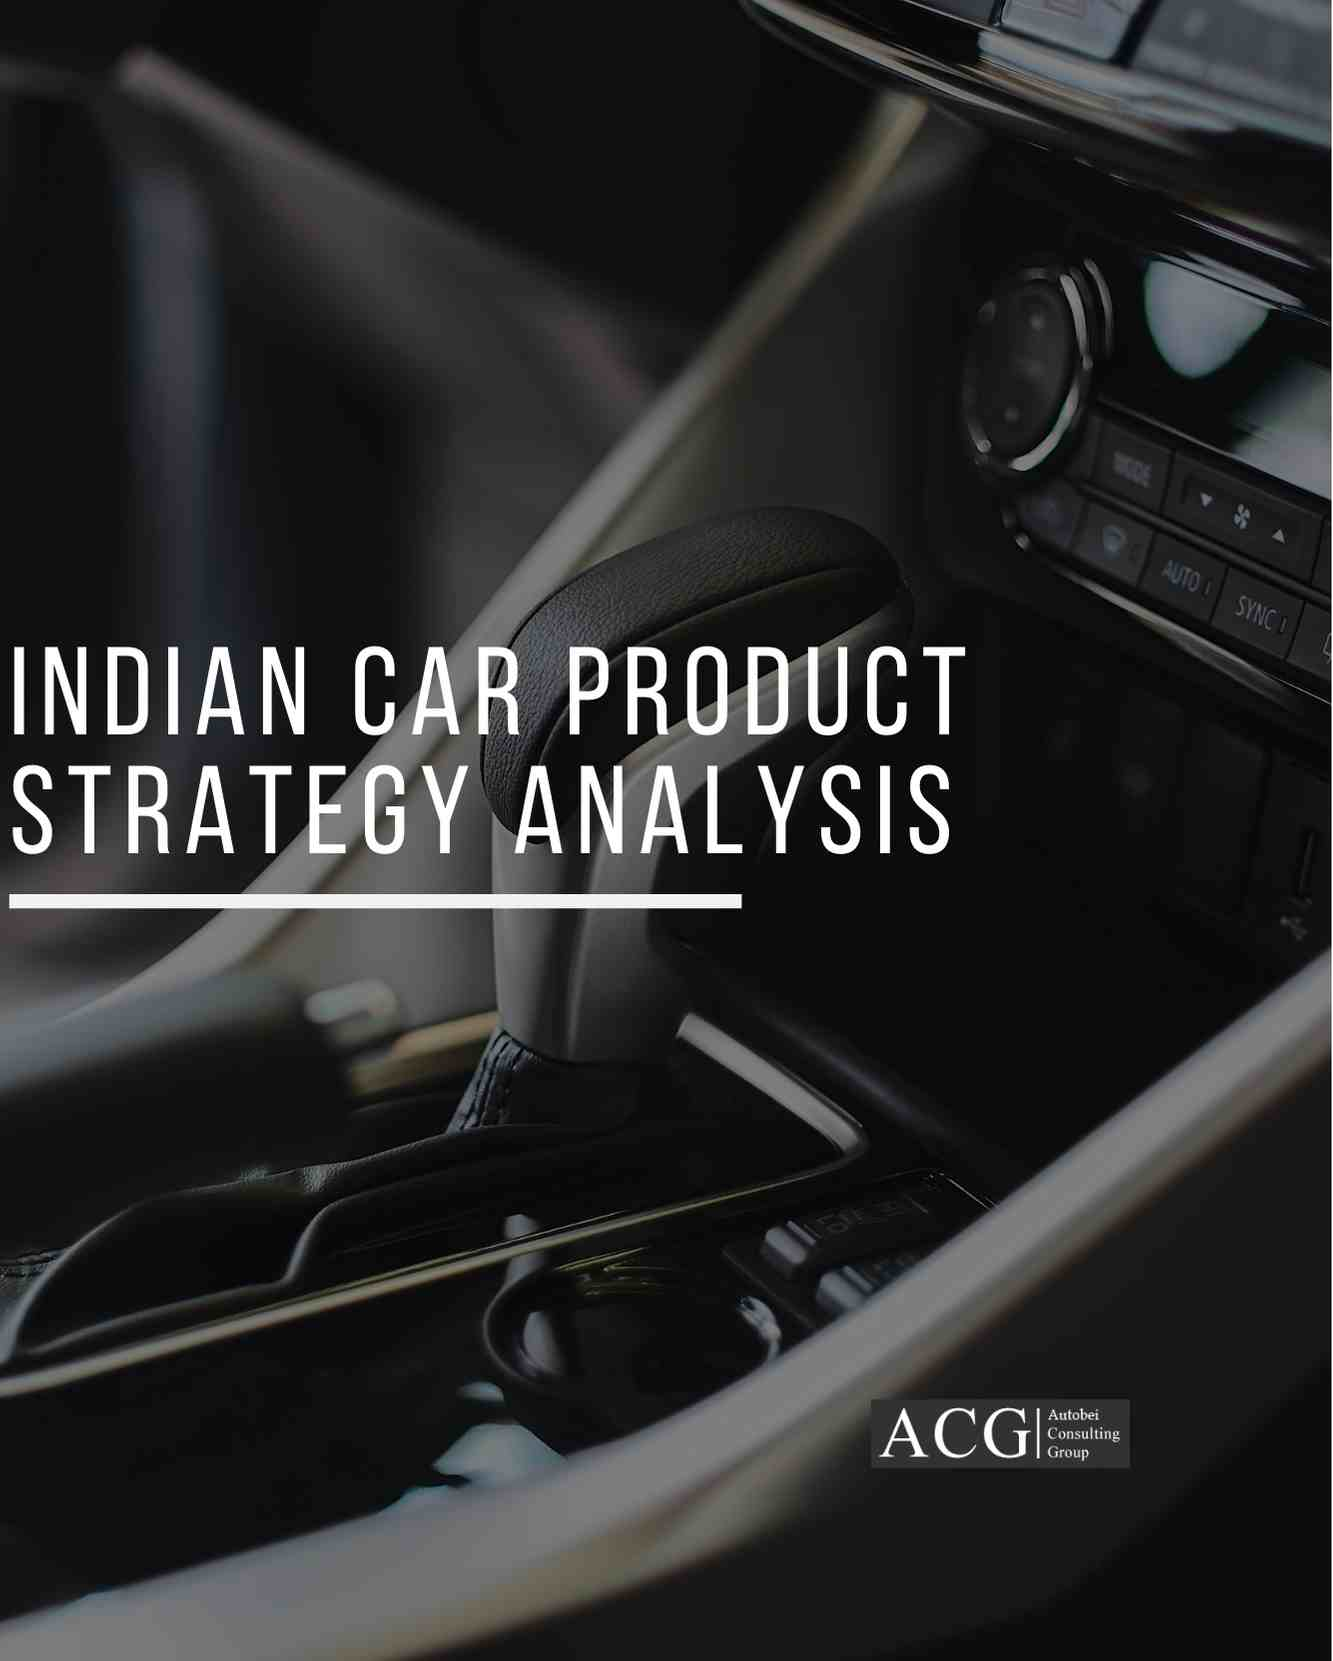 Indian Car Product Strategy Analysis